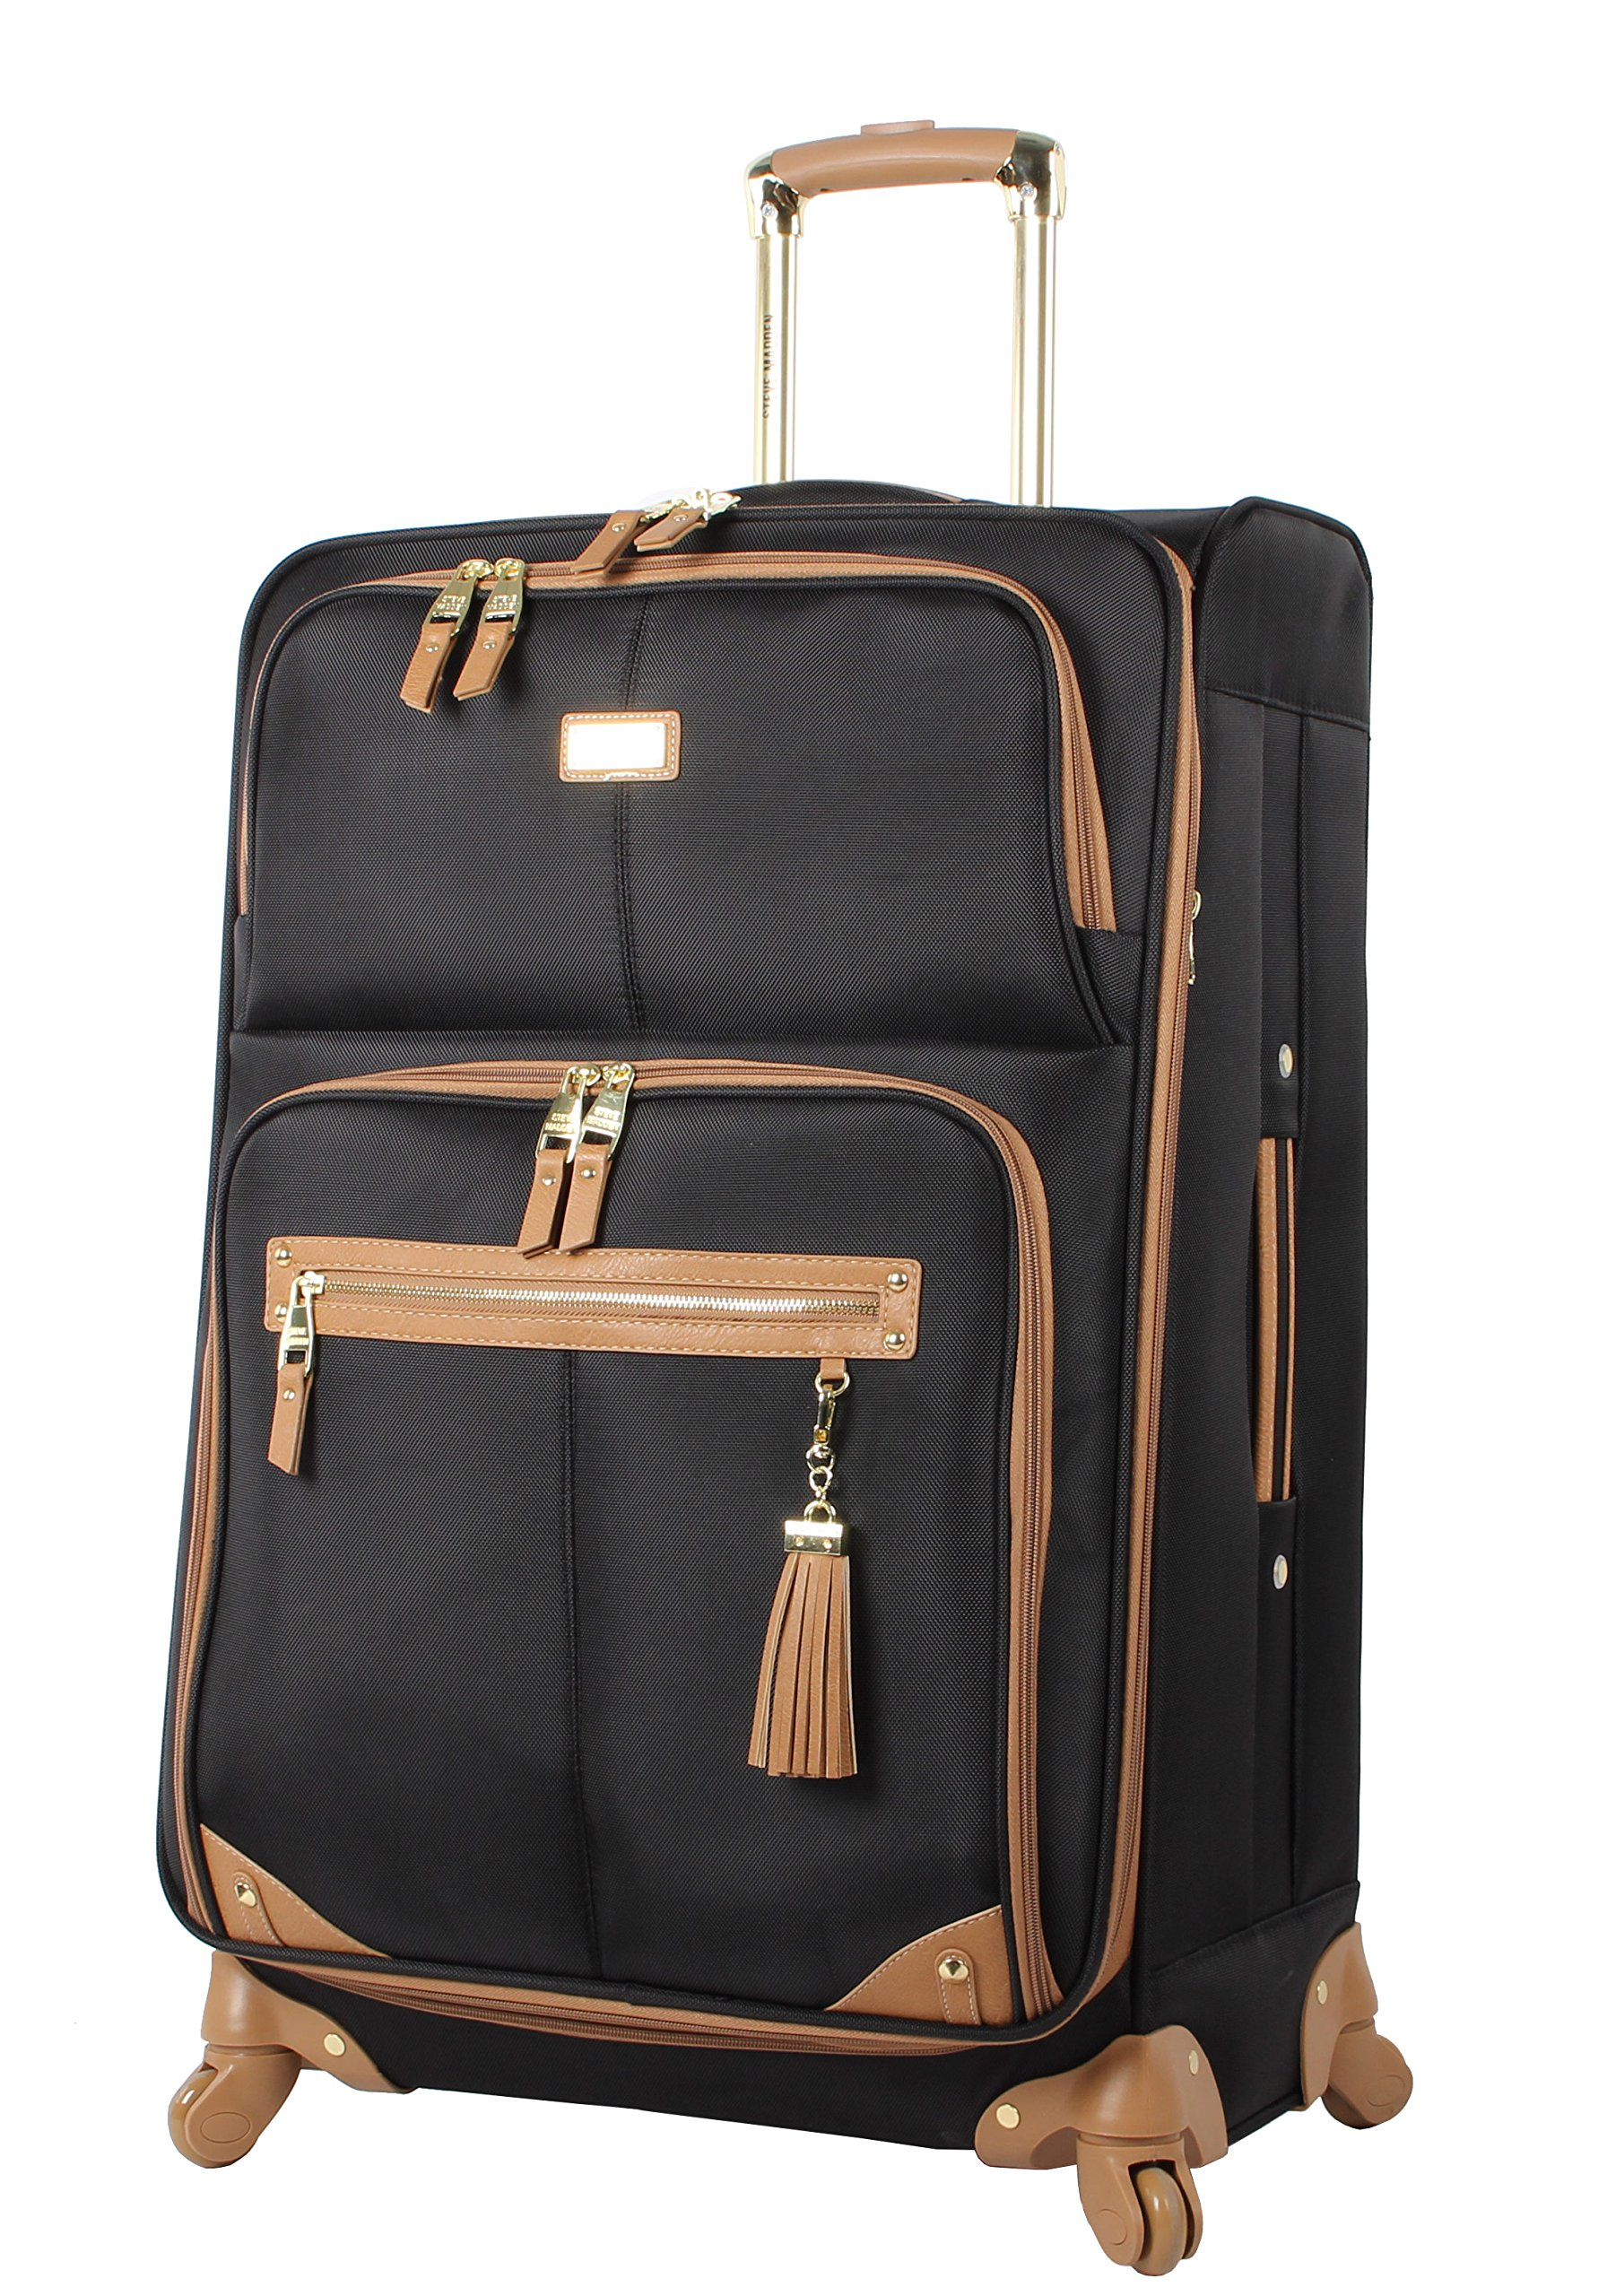 Steve Madden Luggage Large 28'' Expandable Softside Suitcase With Spinner Wheels (28in, Harlo Black)